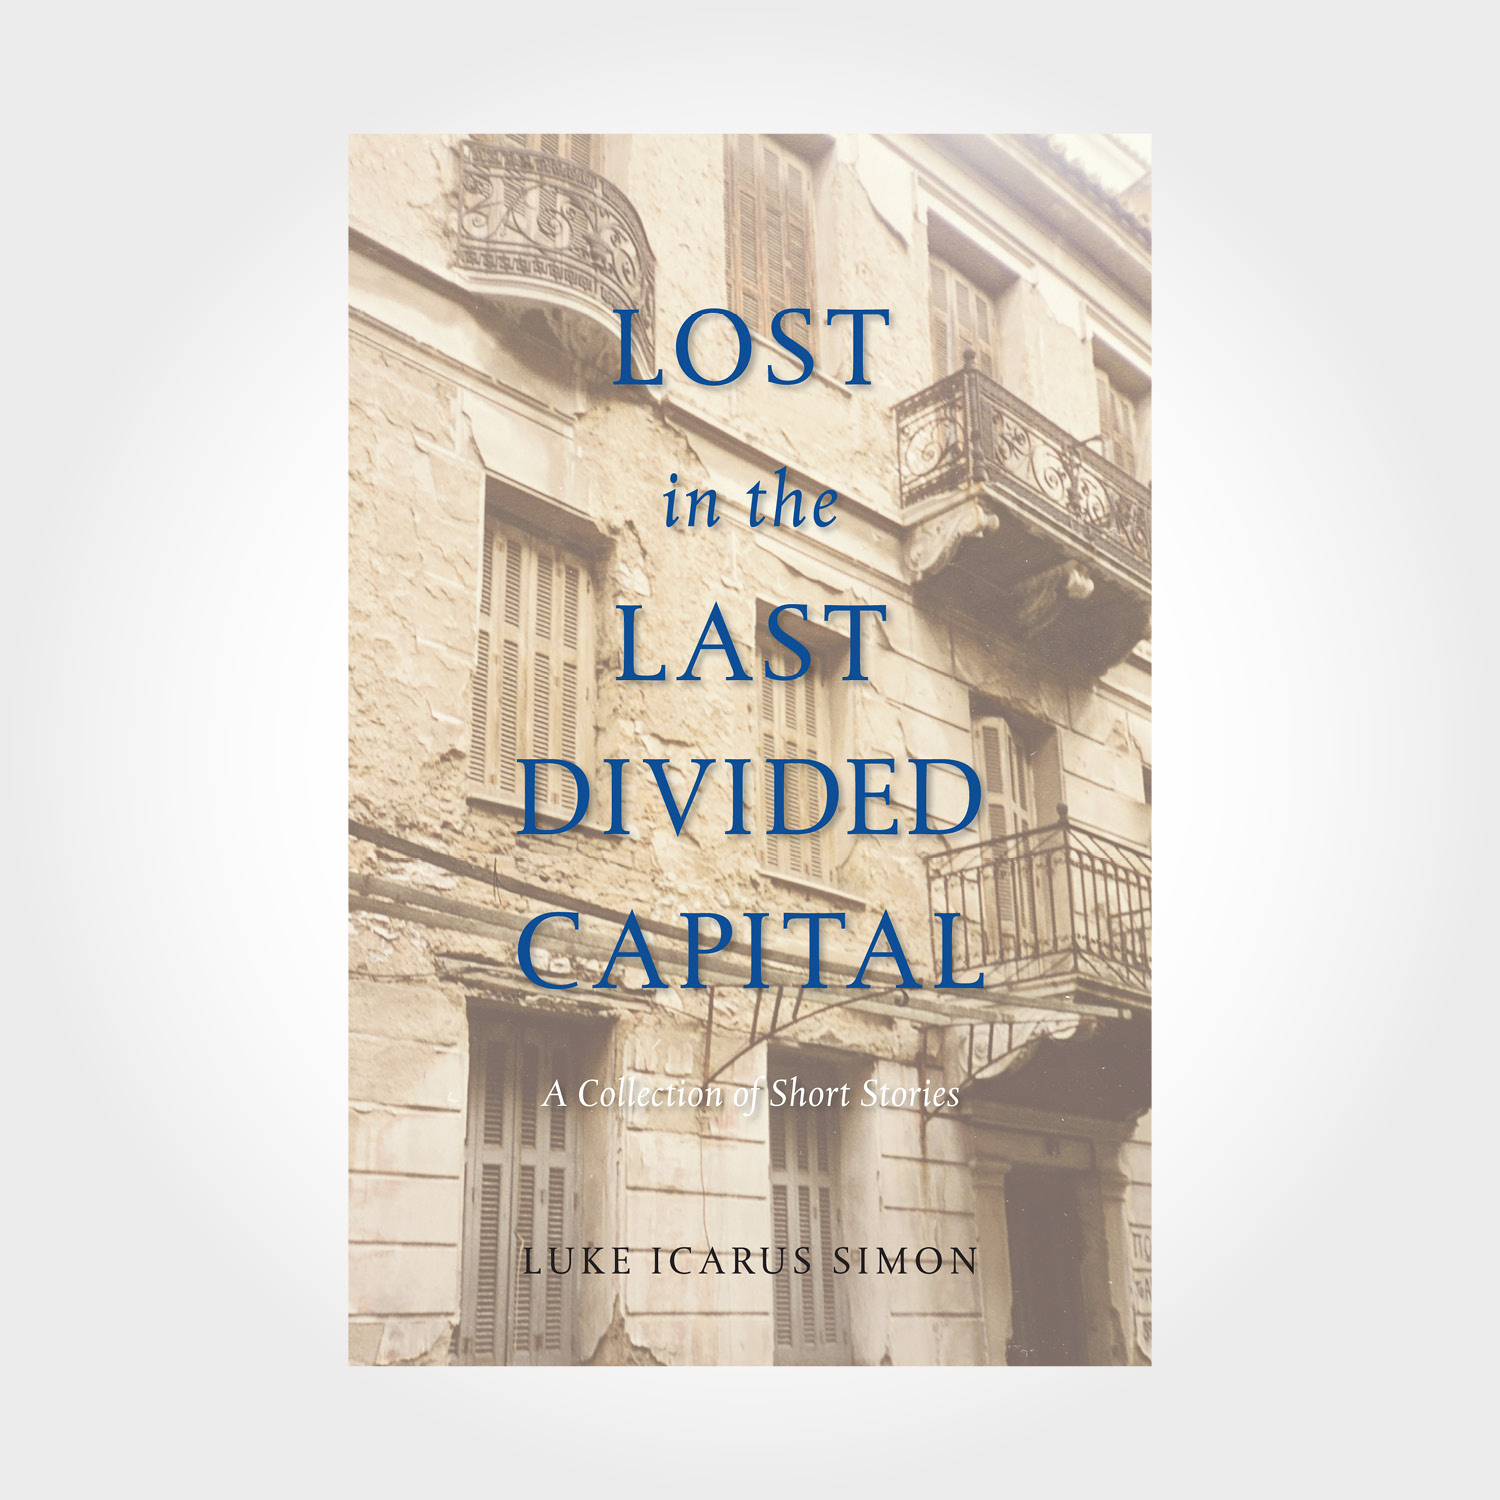 lost-in-the-last-divided-capital.jpg